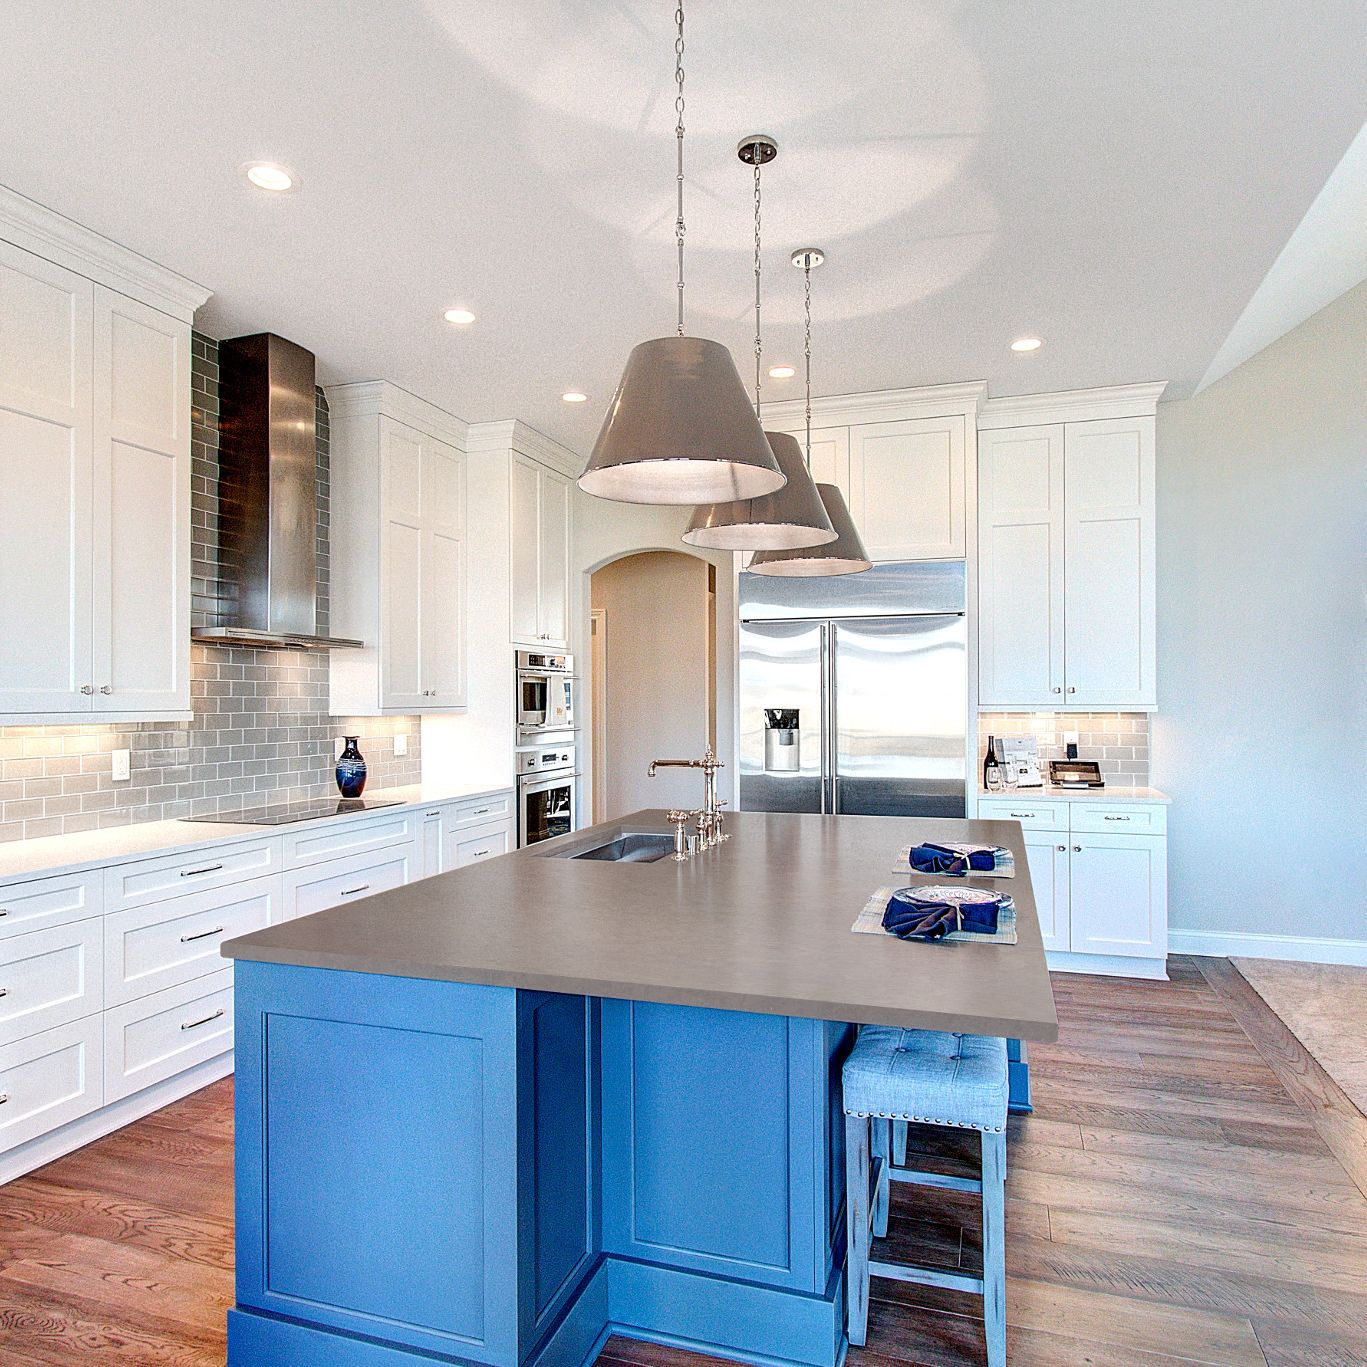 A kitchen with white cabinets  Description automatically generated with medium confidence